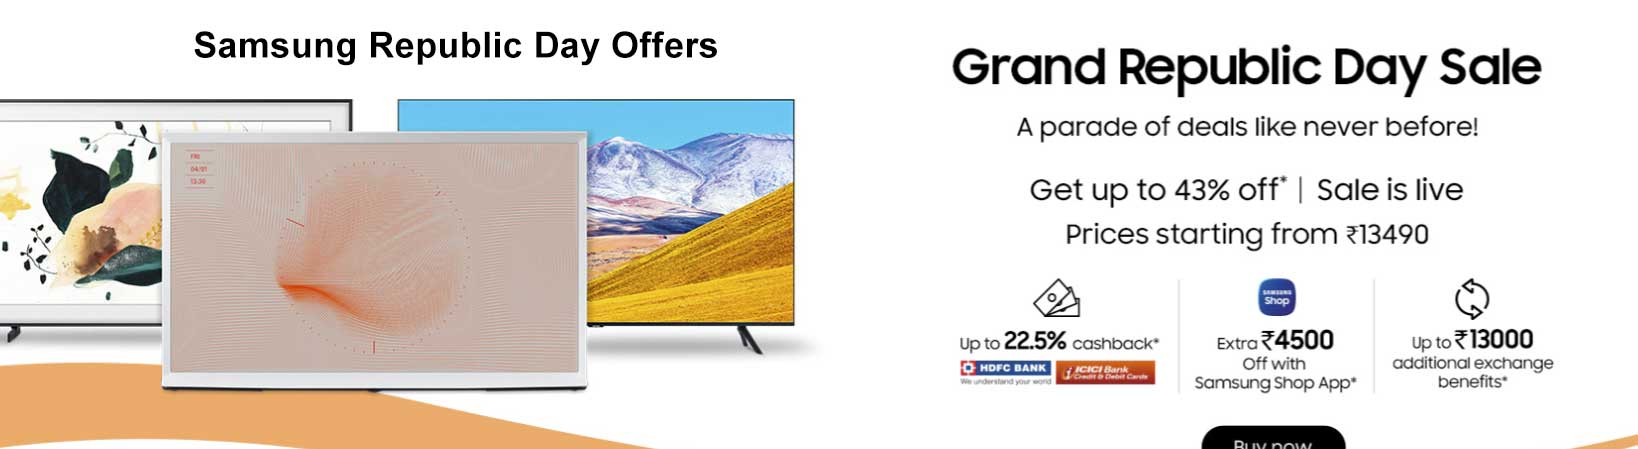 Samsung Republic Day Offers